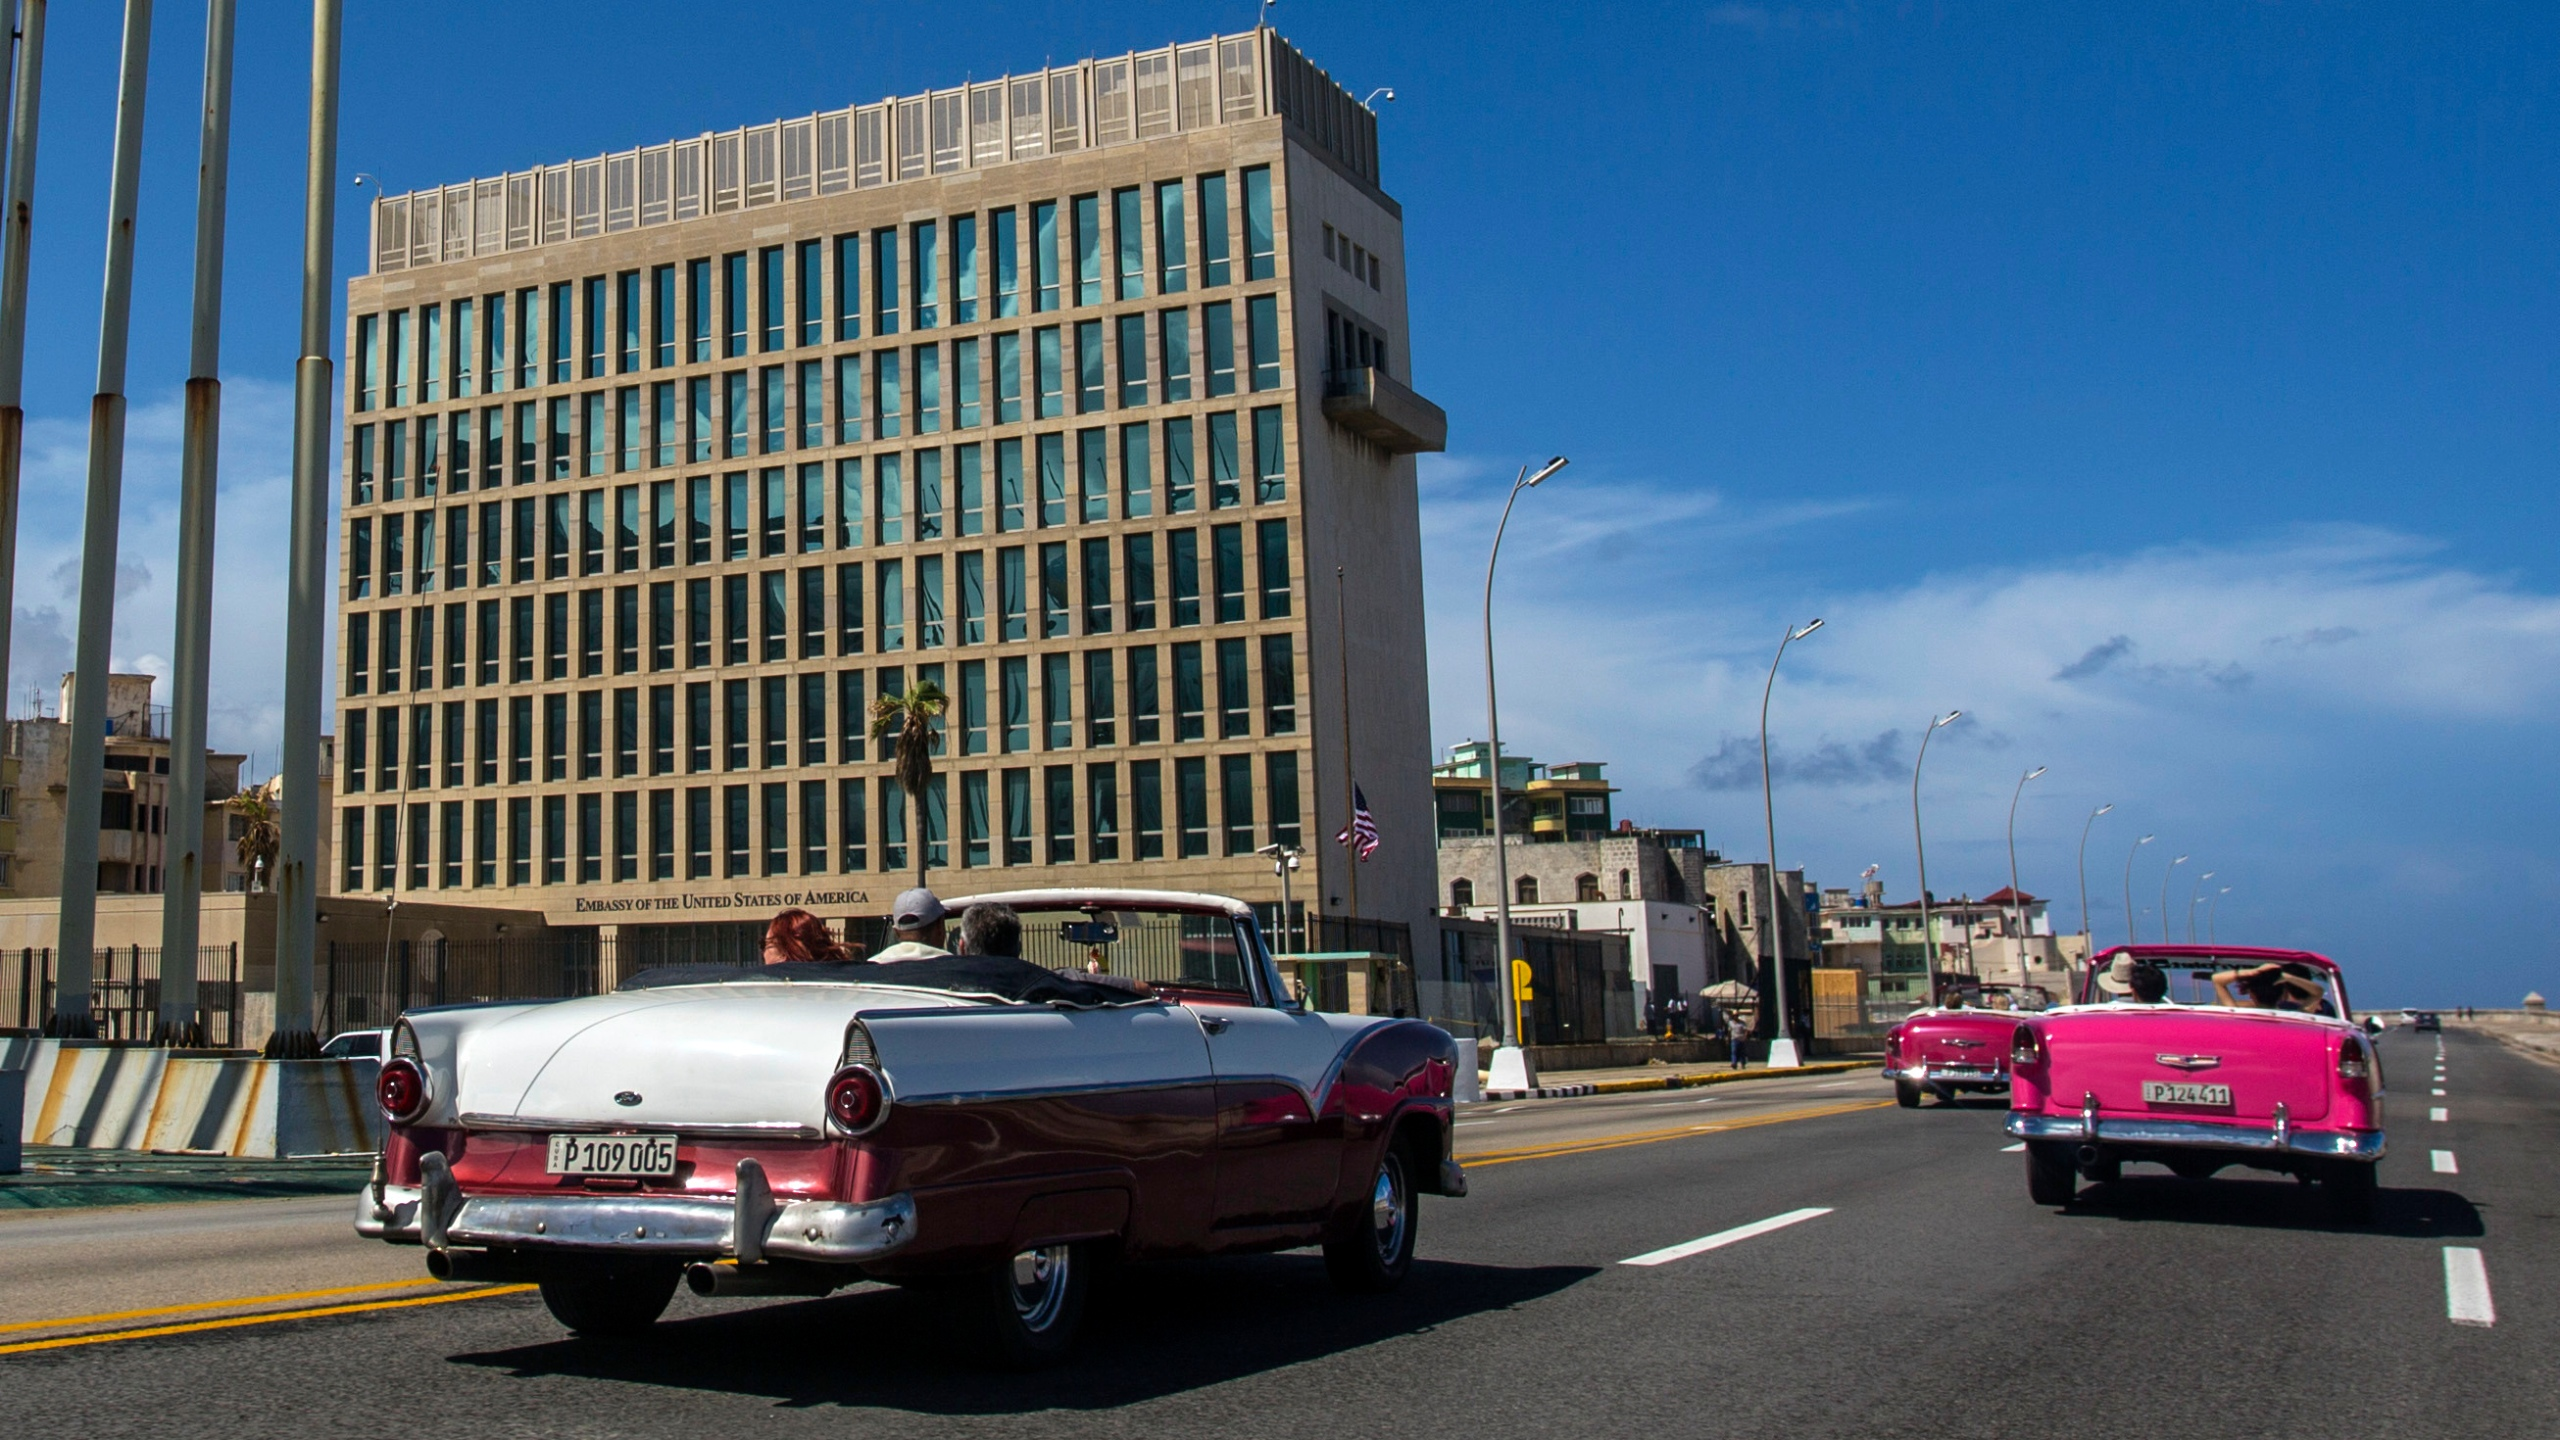 In this Oct. 3, 2017, file photo, tourists ride classic convertible cars on the Malecon beside the United States Embassy in Havana, Cuba. (AP Photo/Desmond Boylan, File)